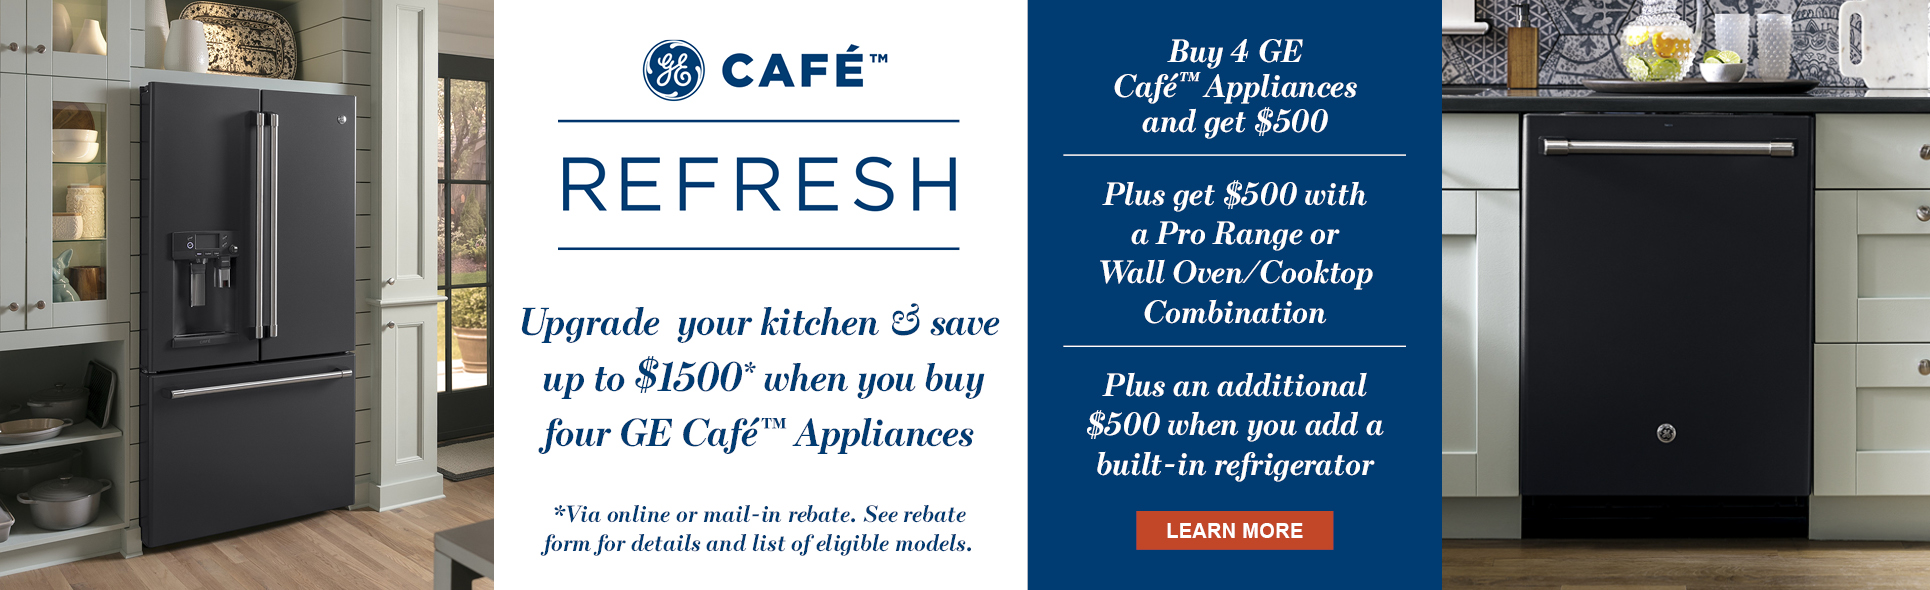 Save up to $1500 With Qualified GE Cafe Appliance Package purchase